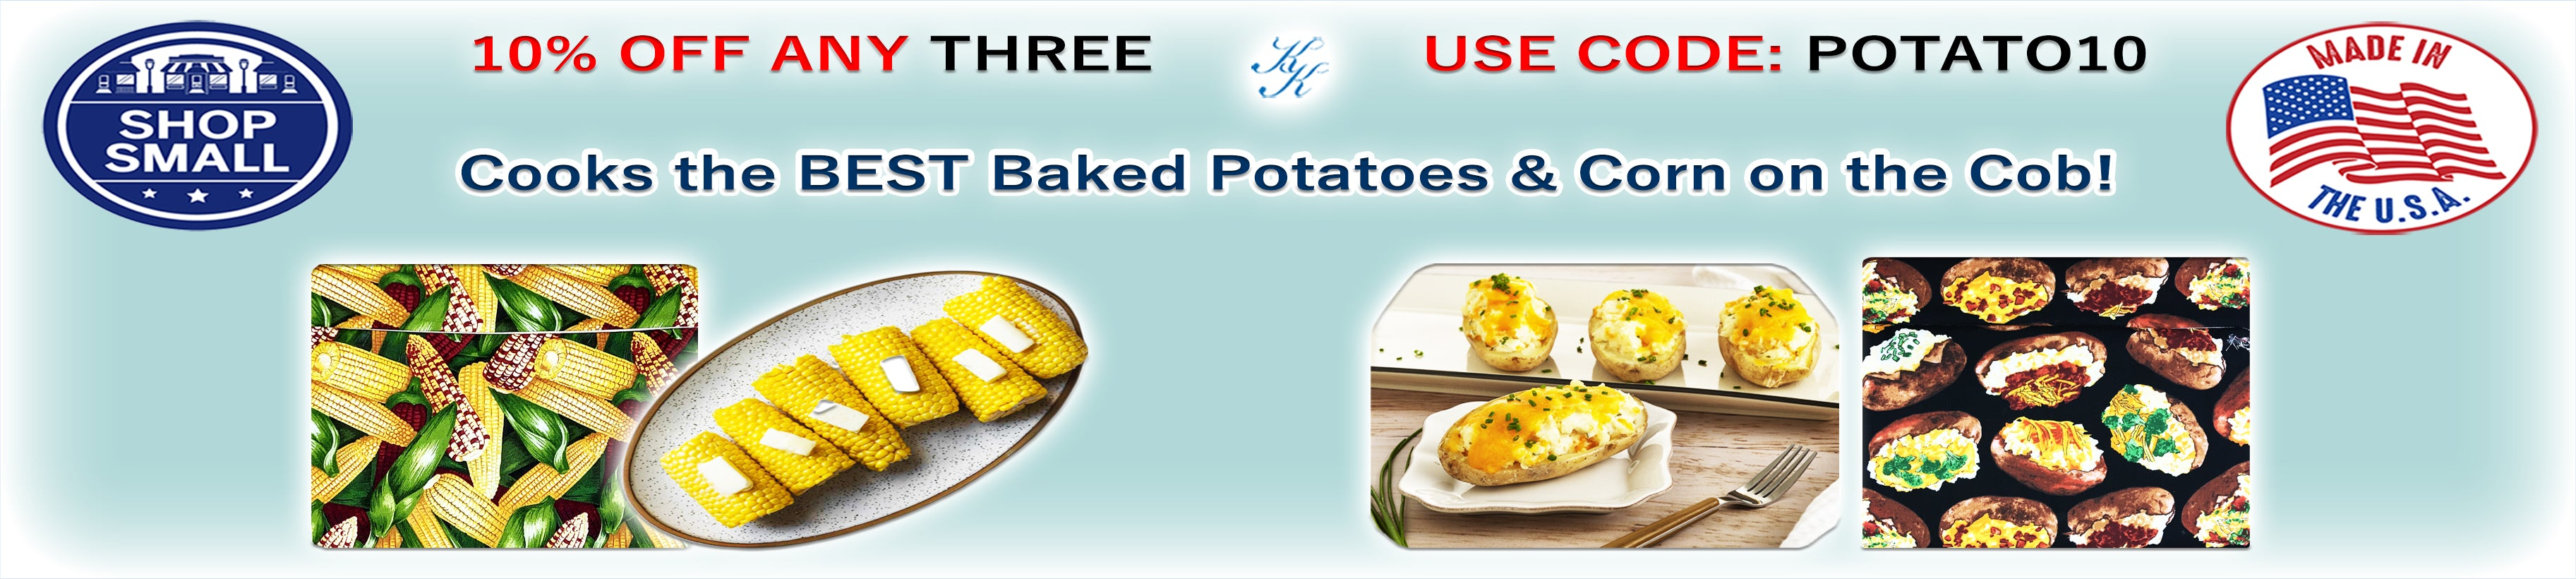 Microwave potato bags by Karen's Kases, buy 3 get 10% off, use code: potato10